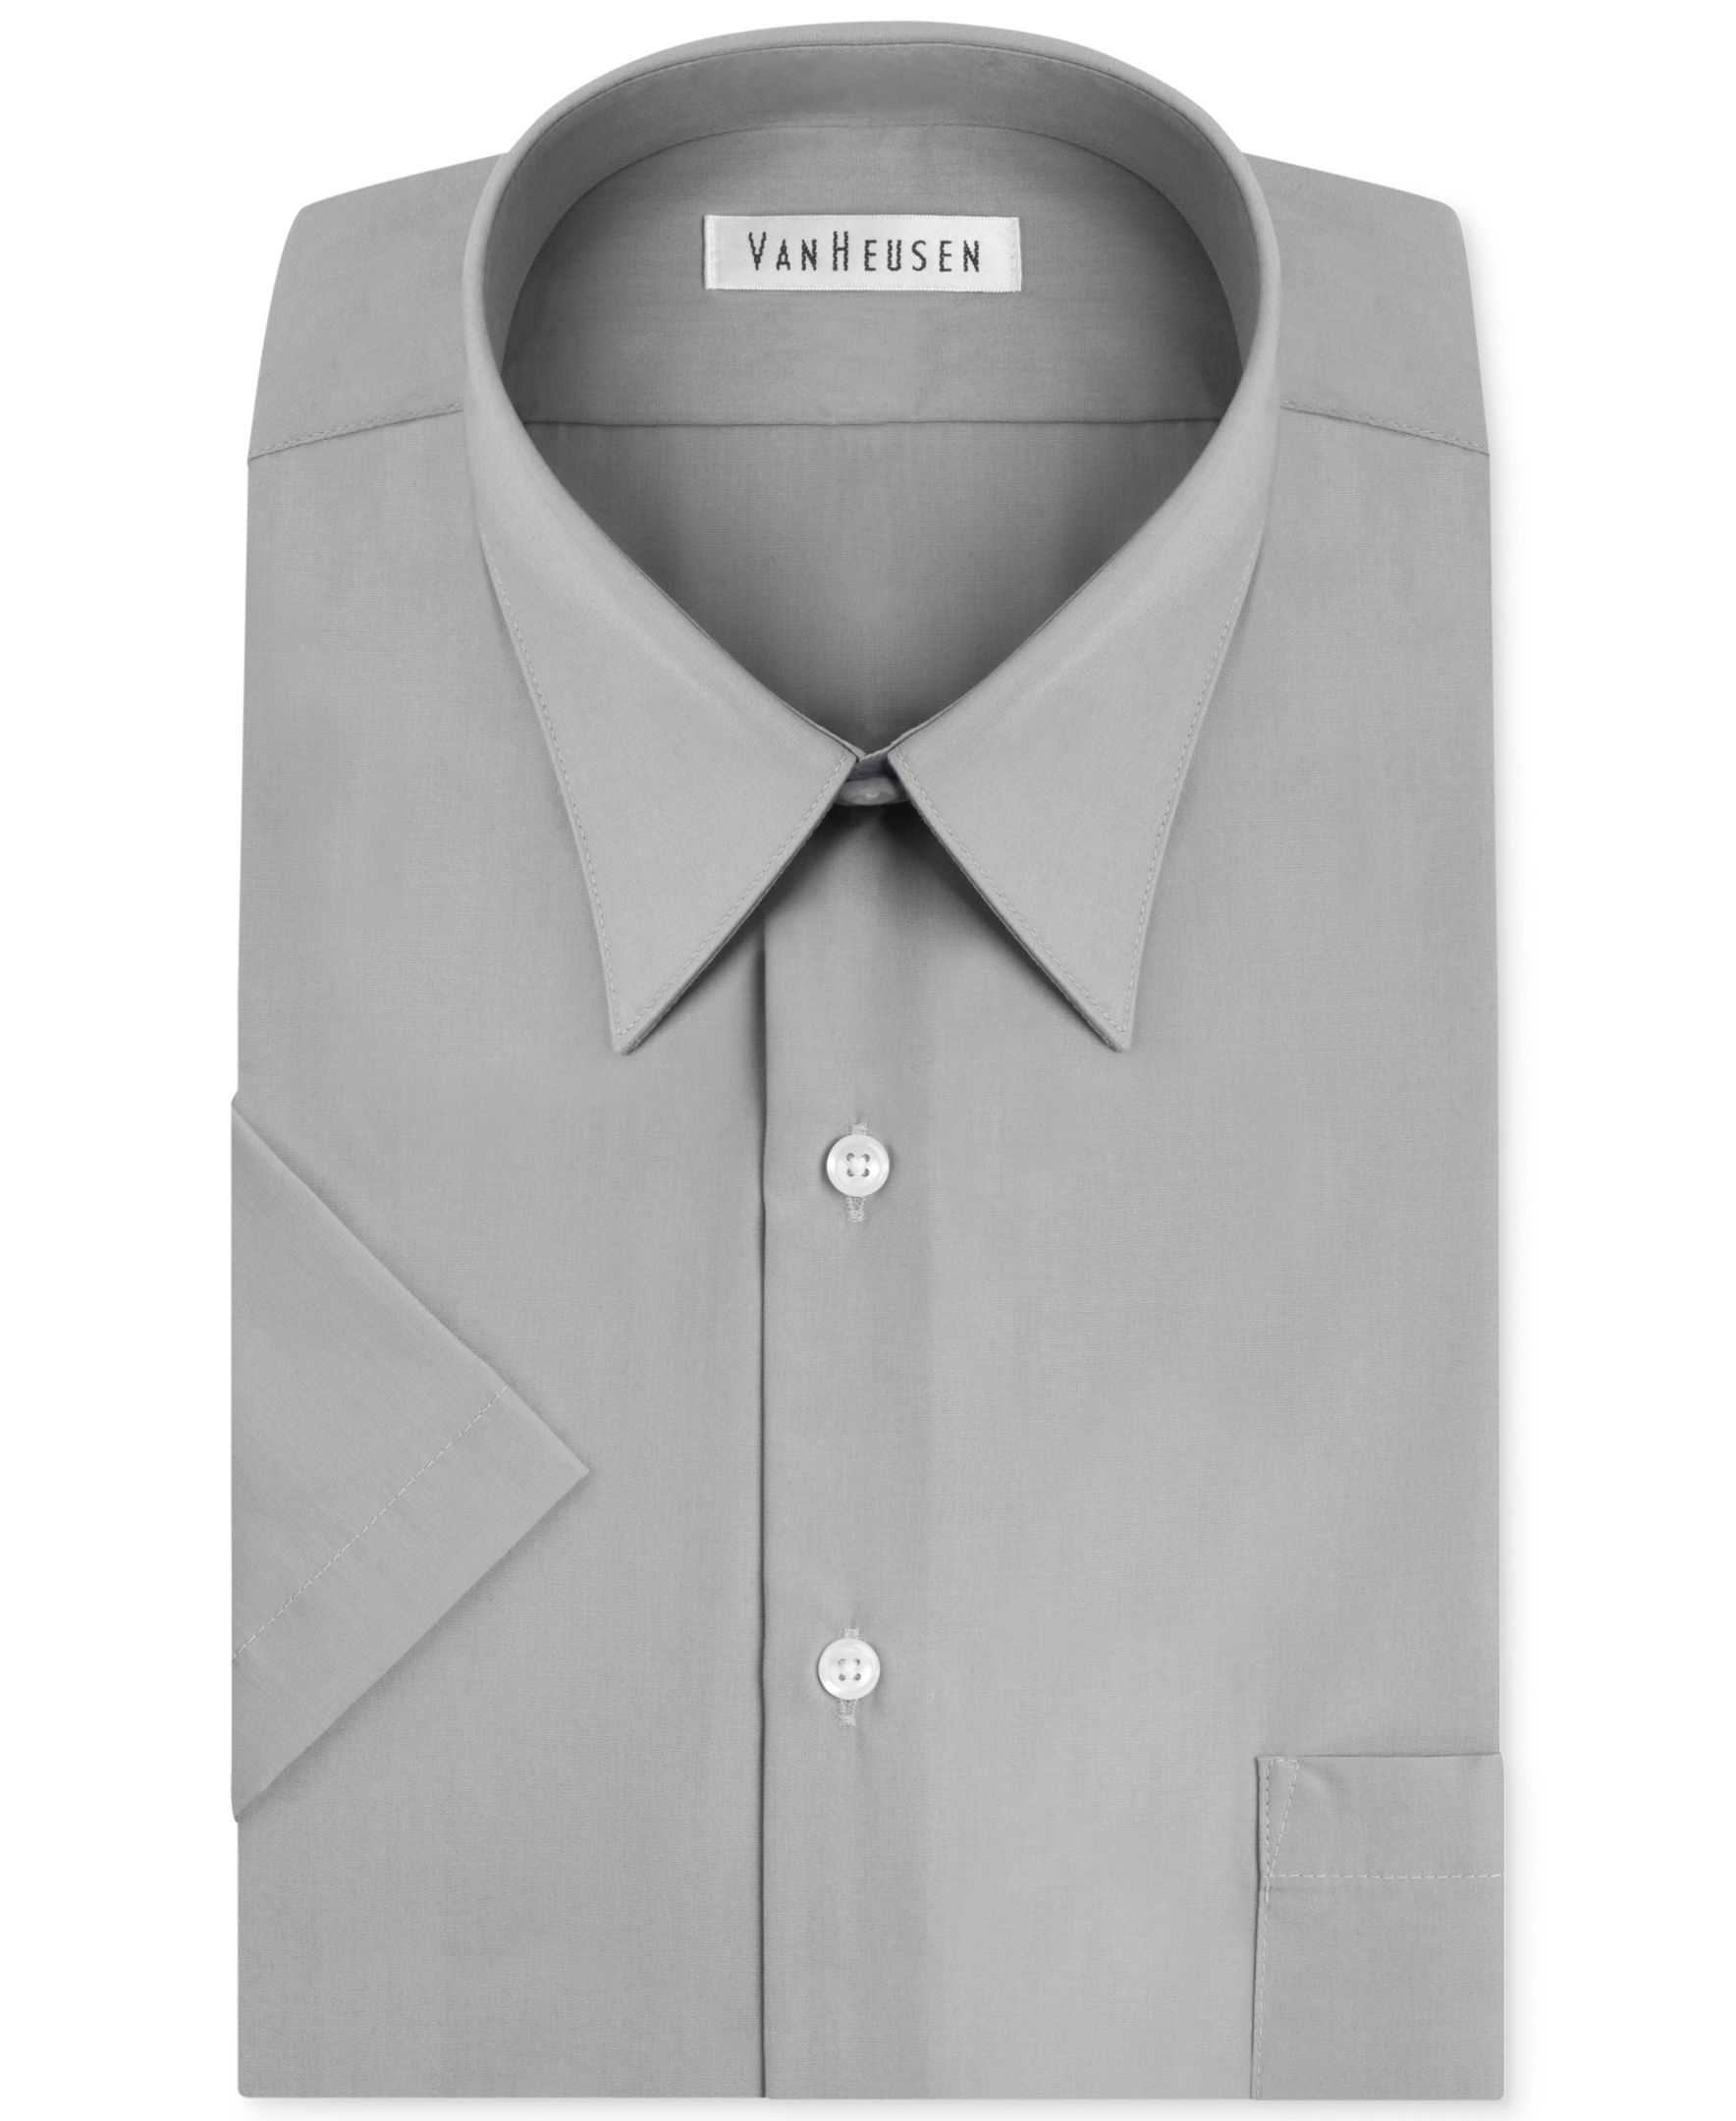 Van Heusen Slim Fit Business Shirts Online Rldm